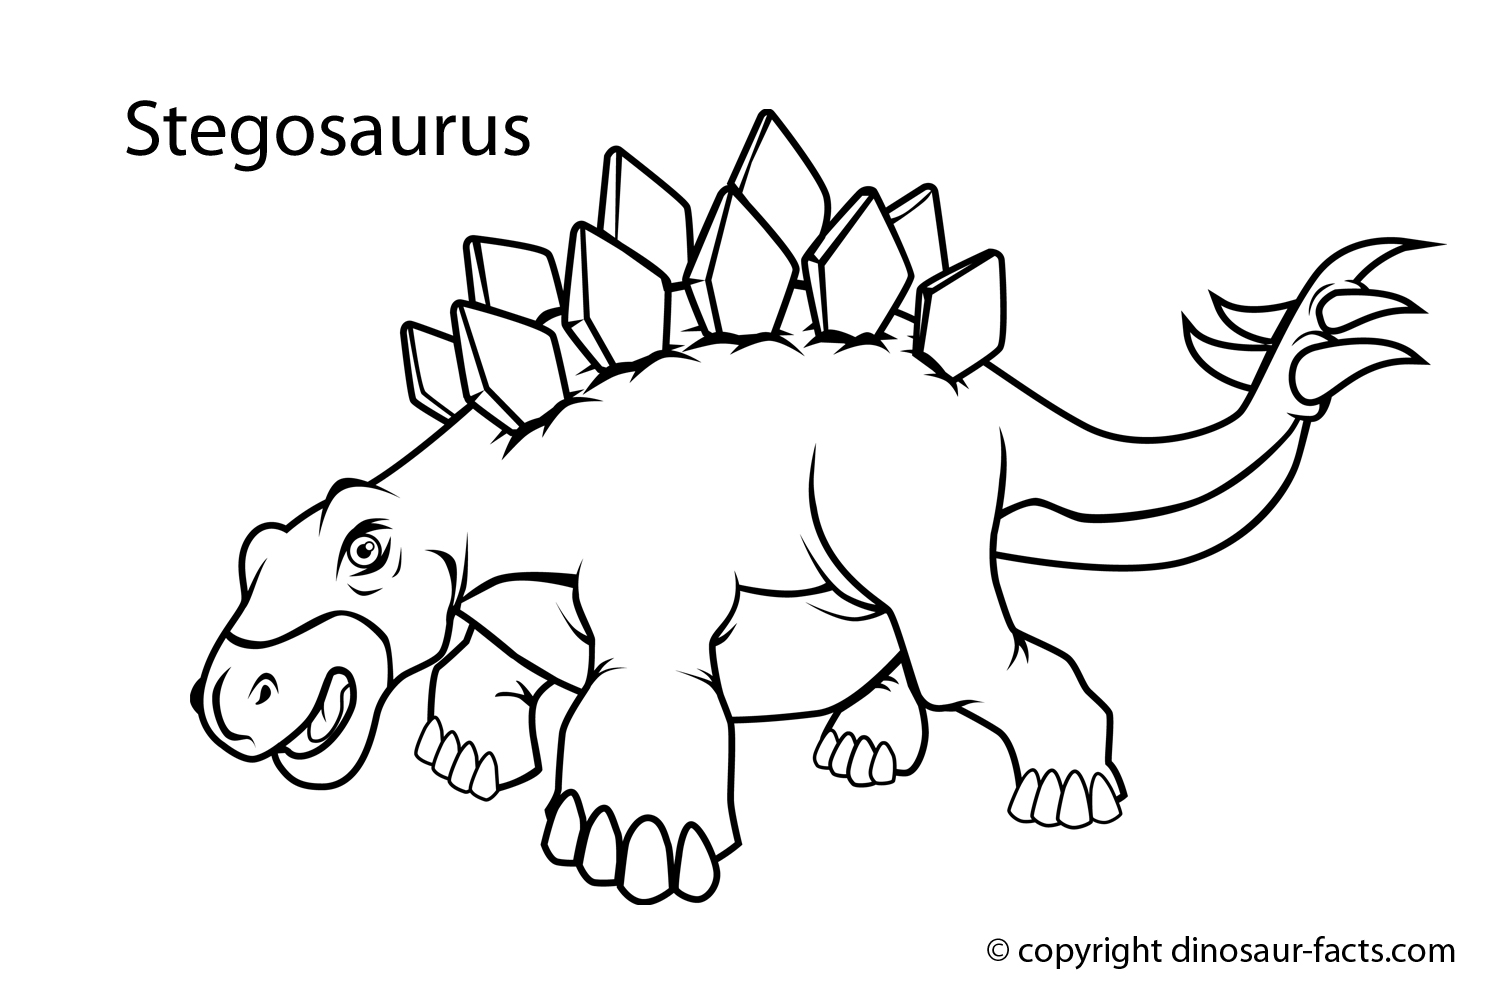 dinosaurs coloring pages printable coloring pages dinosaur free printable coloring pages printable dinosaurs pages coloring